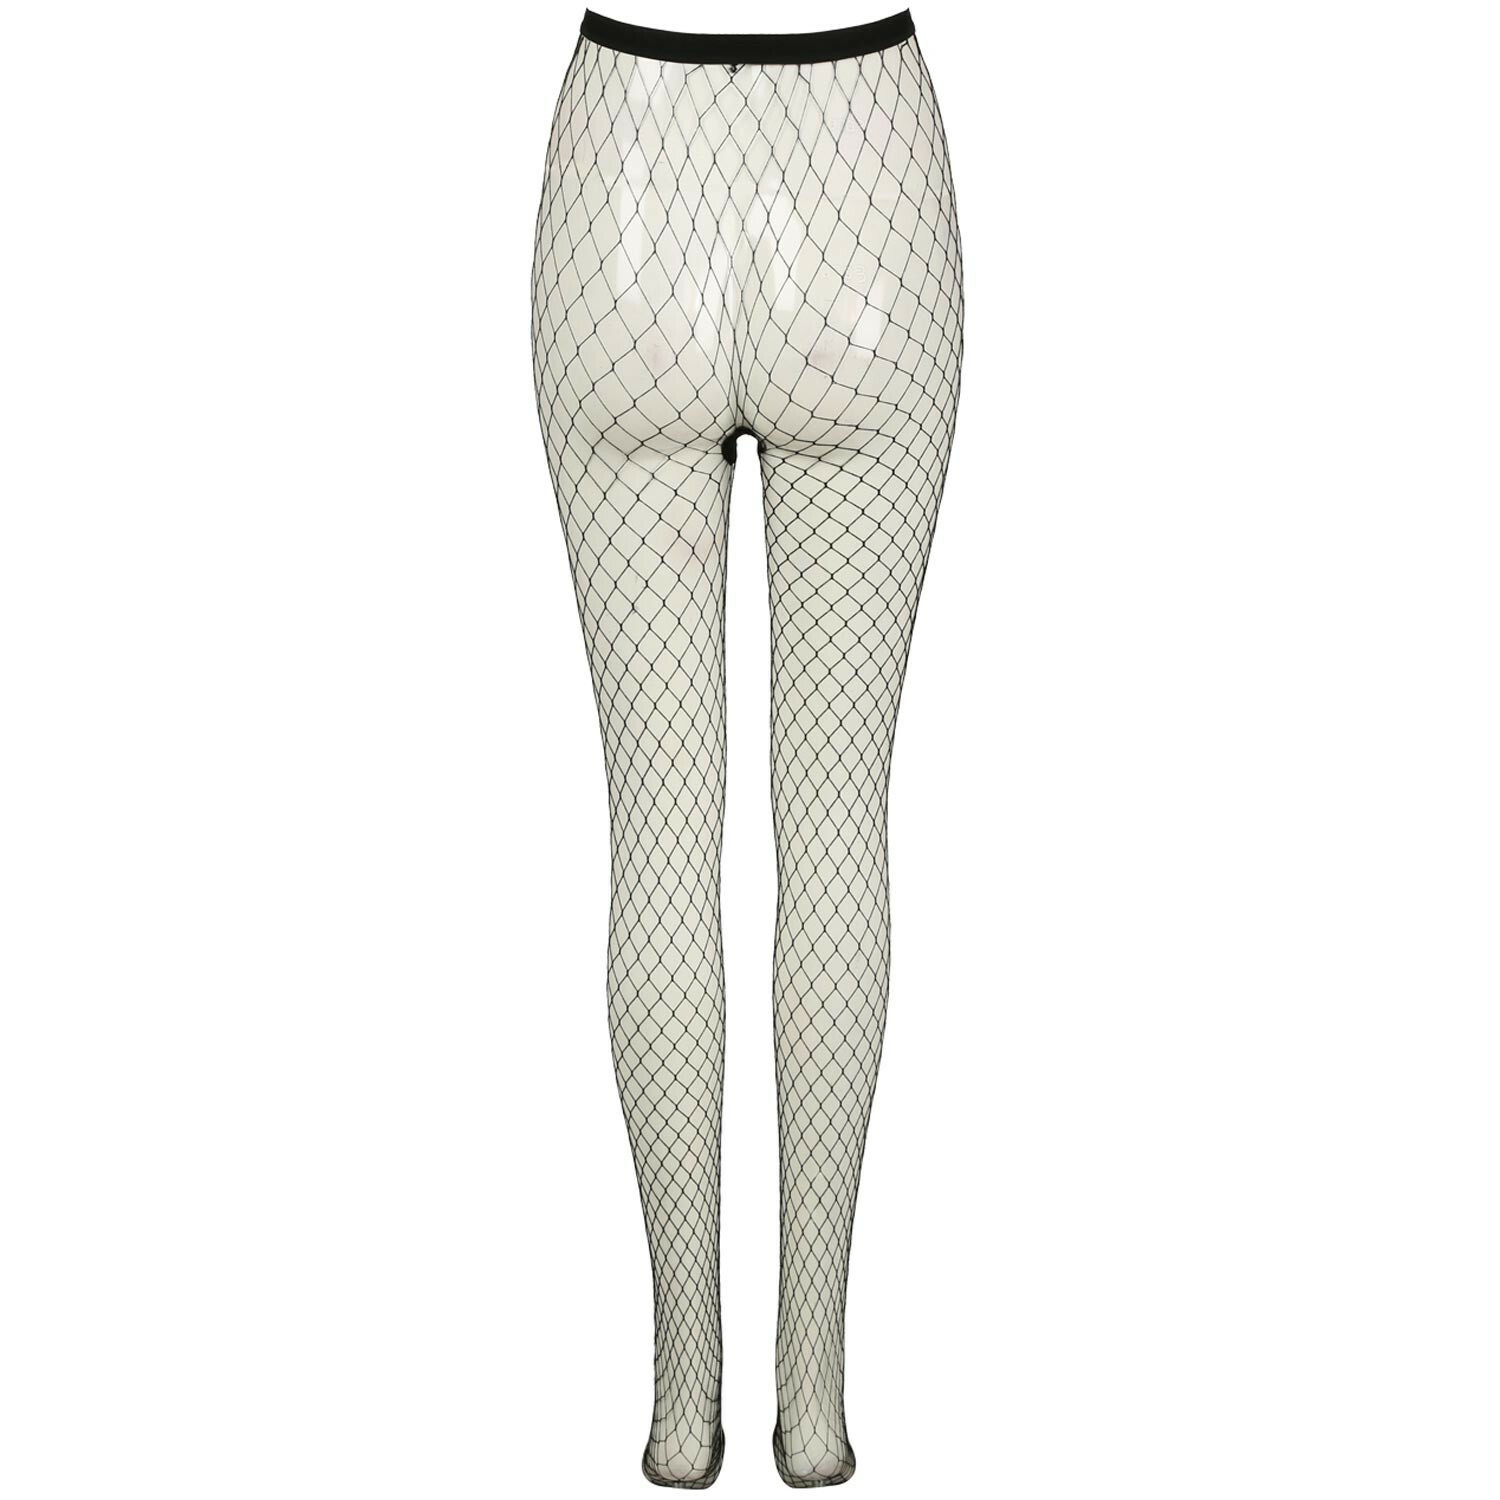 FIERCE FISHNET TIGHTS